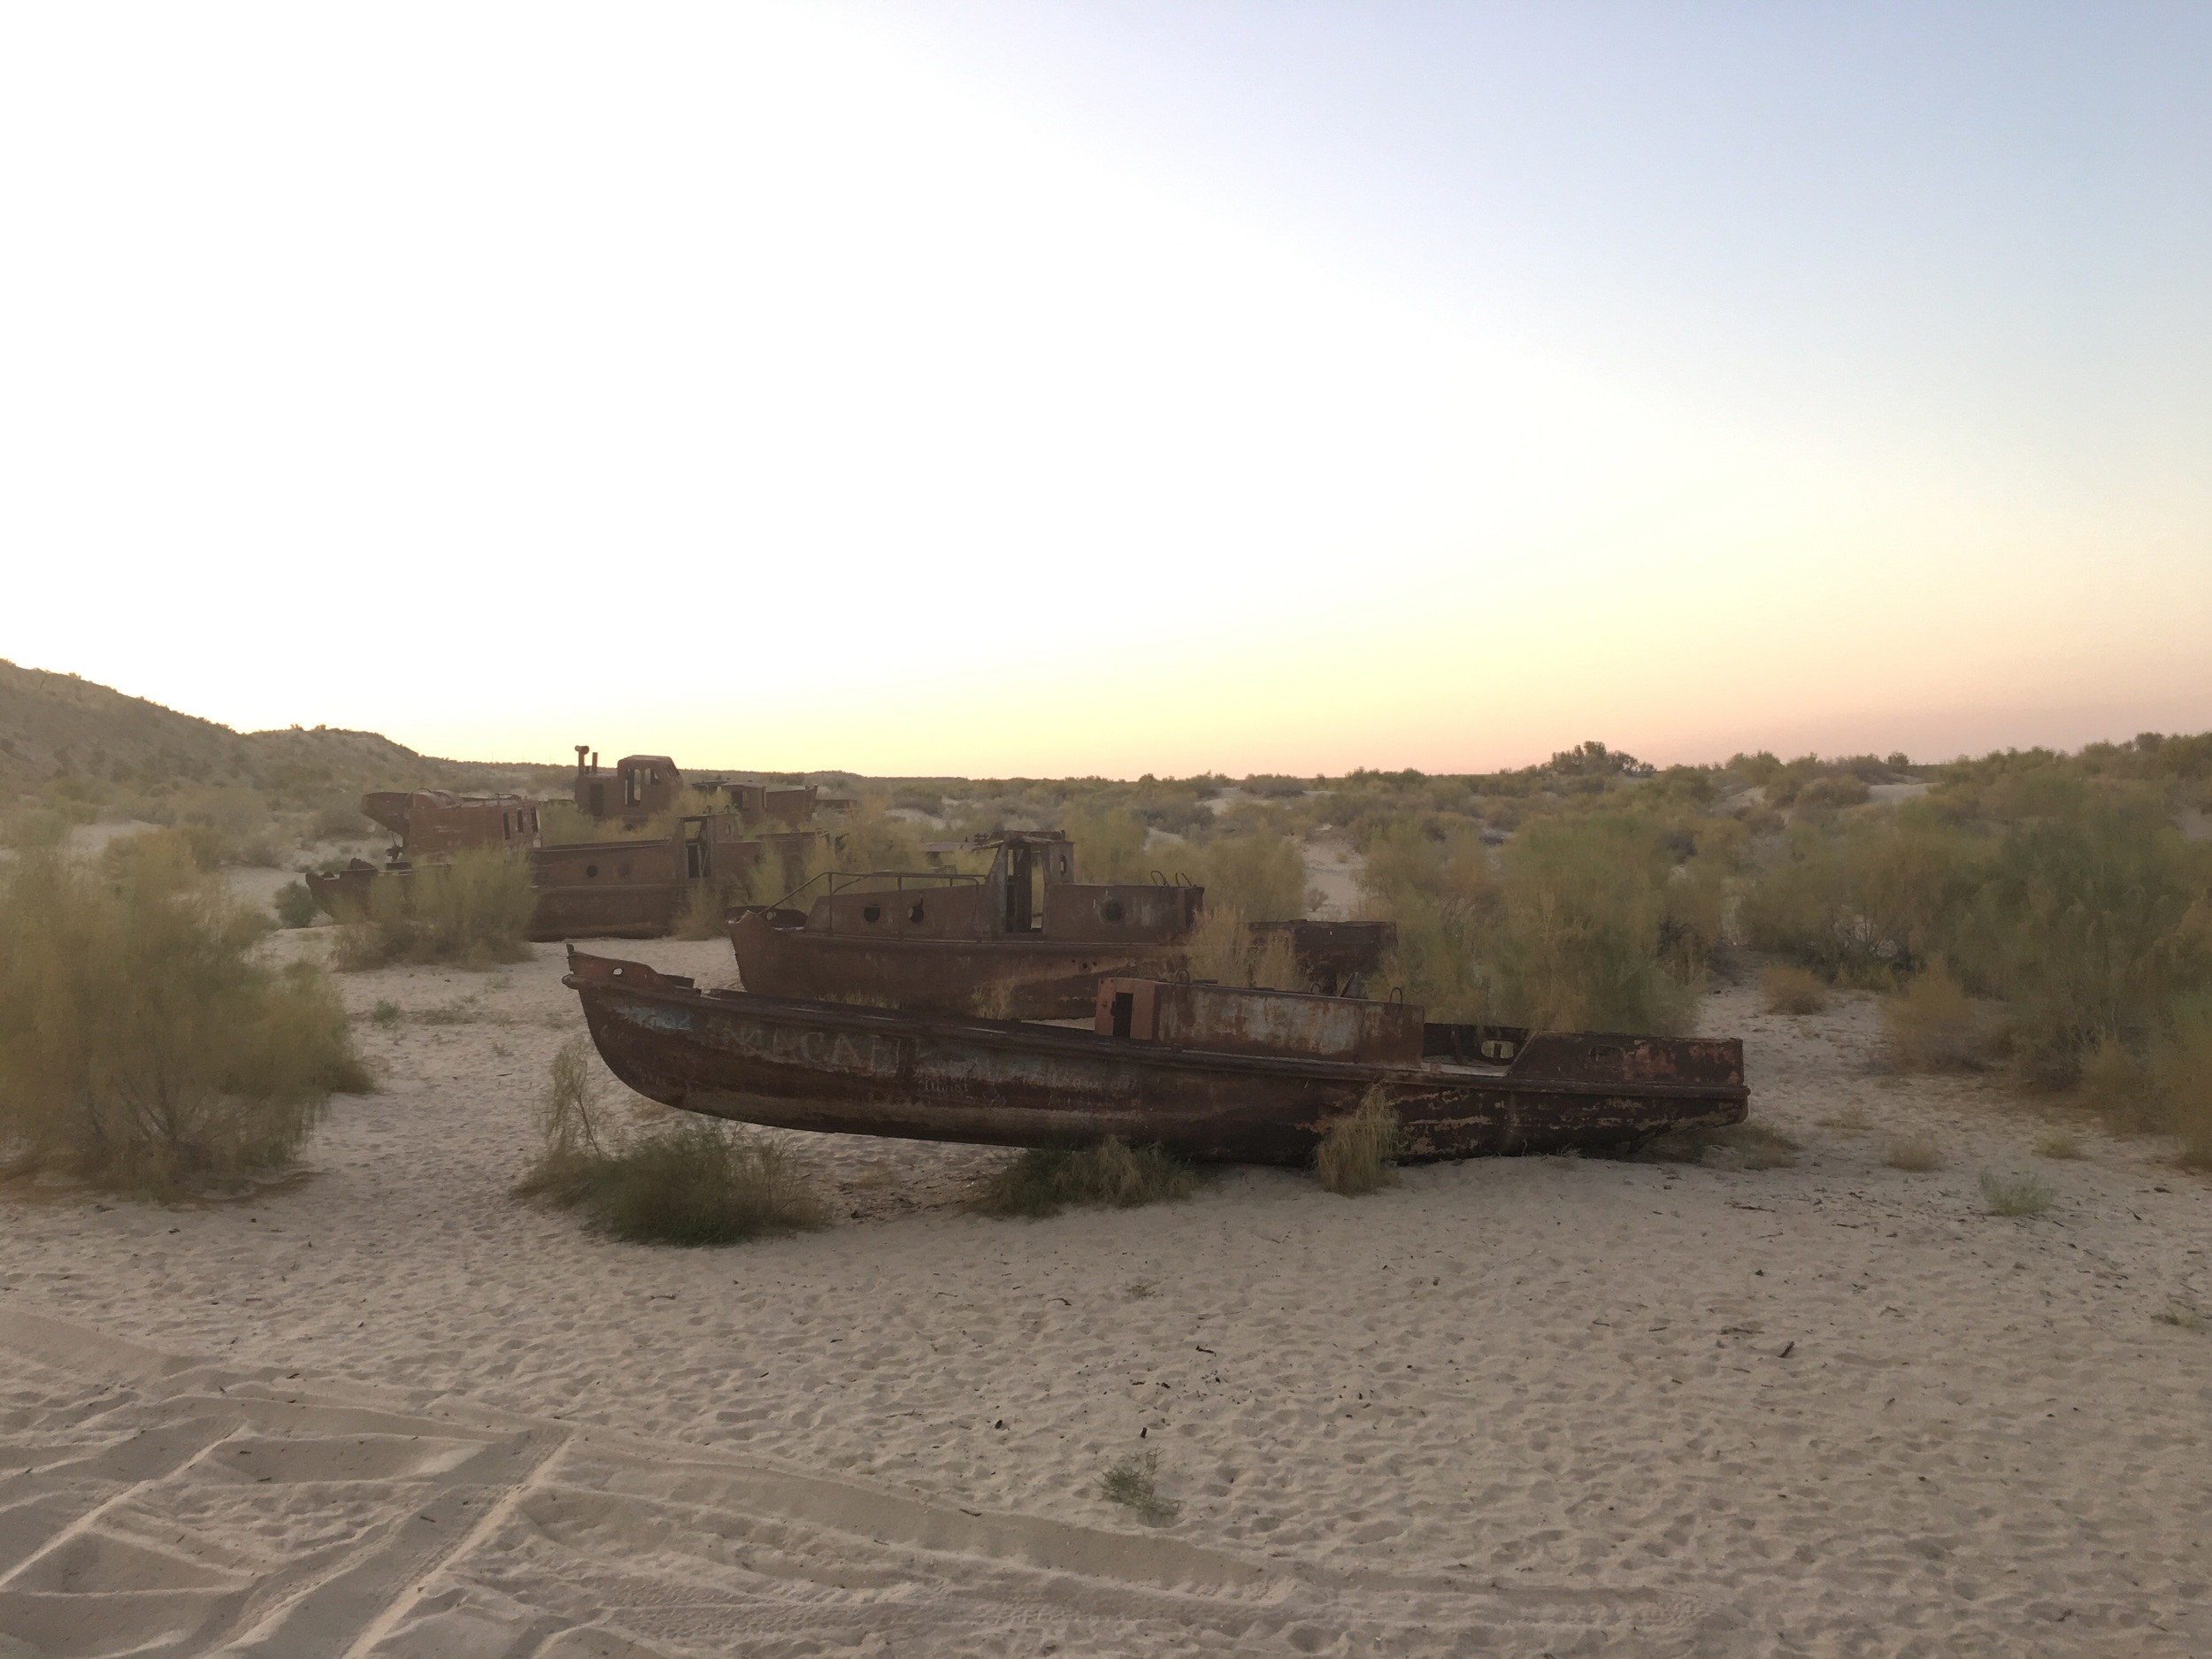 A line of abandoned ships.